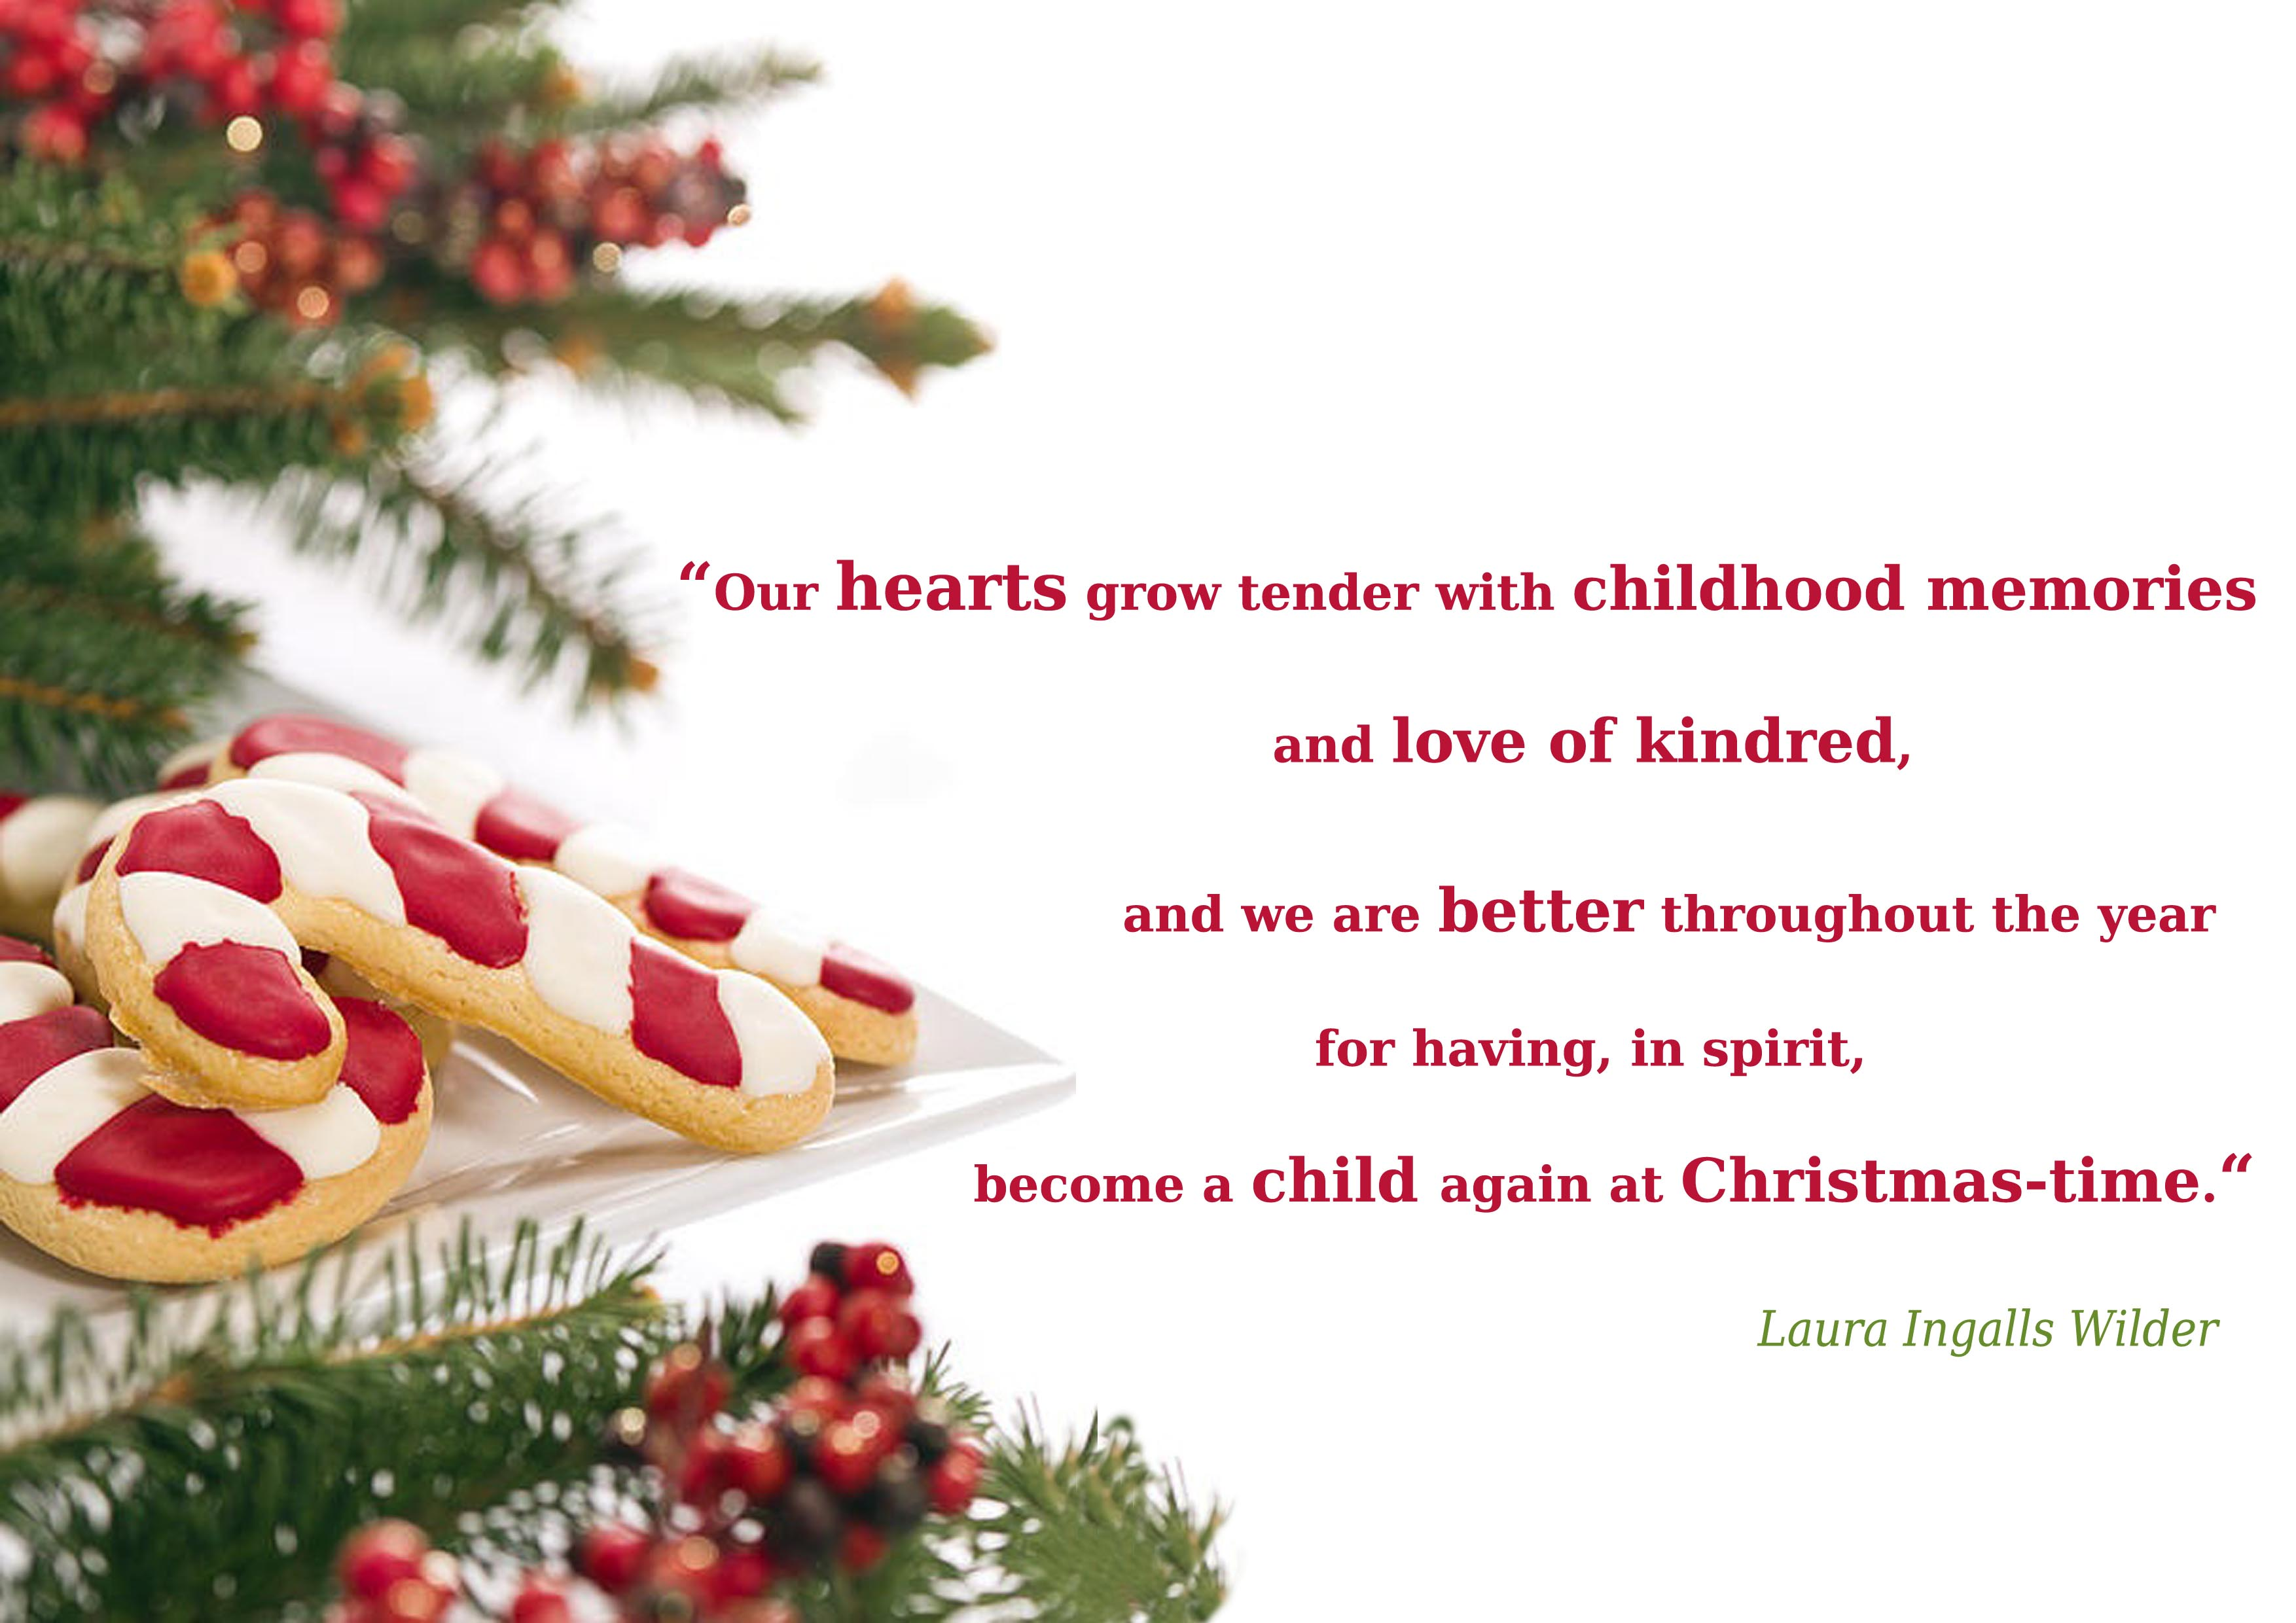 Free Christmas Quotes And Sayings Quotesgram: Christmas Time Quotes. QuotesGram